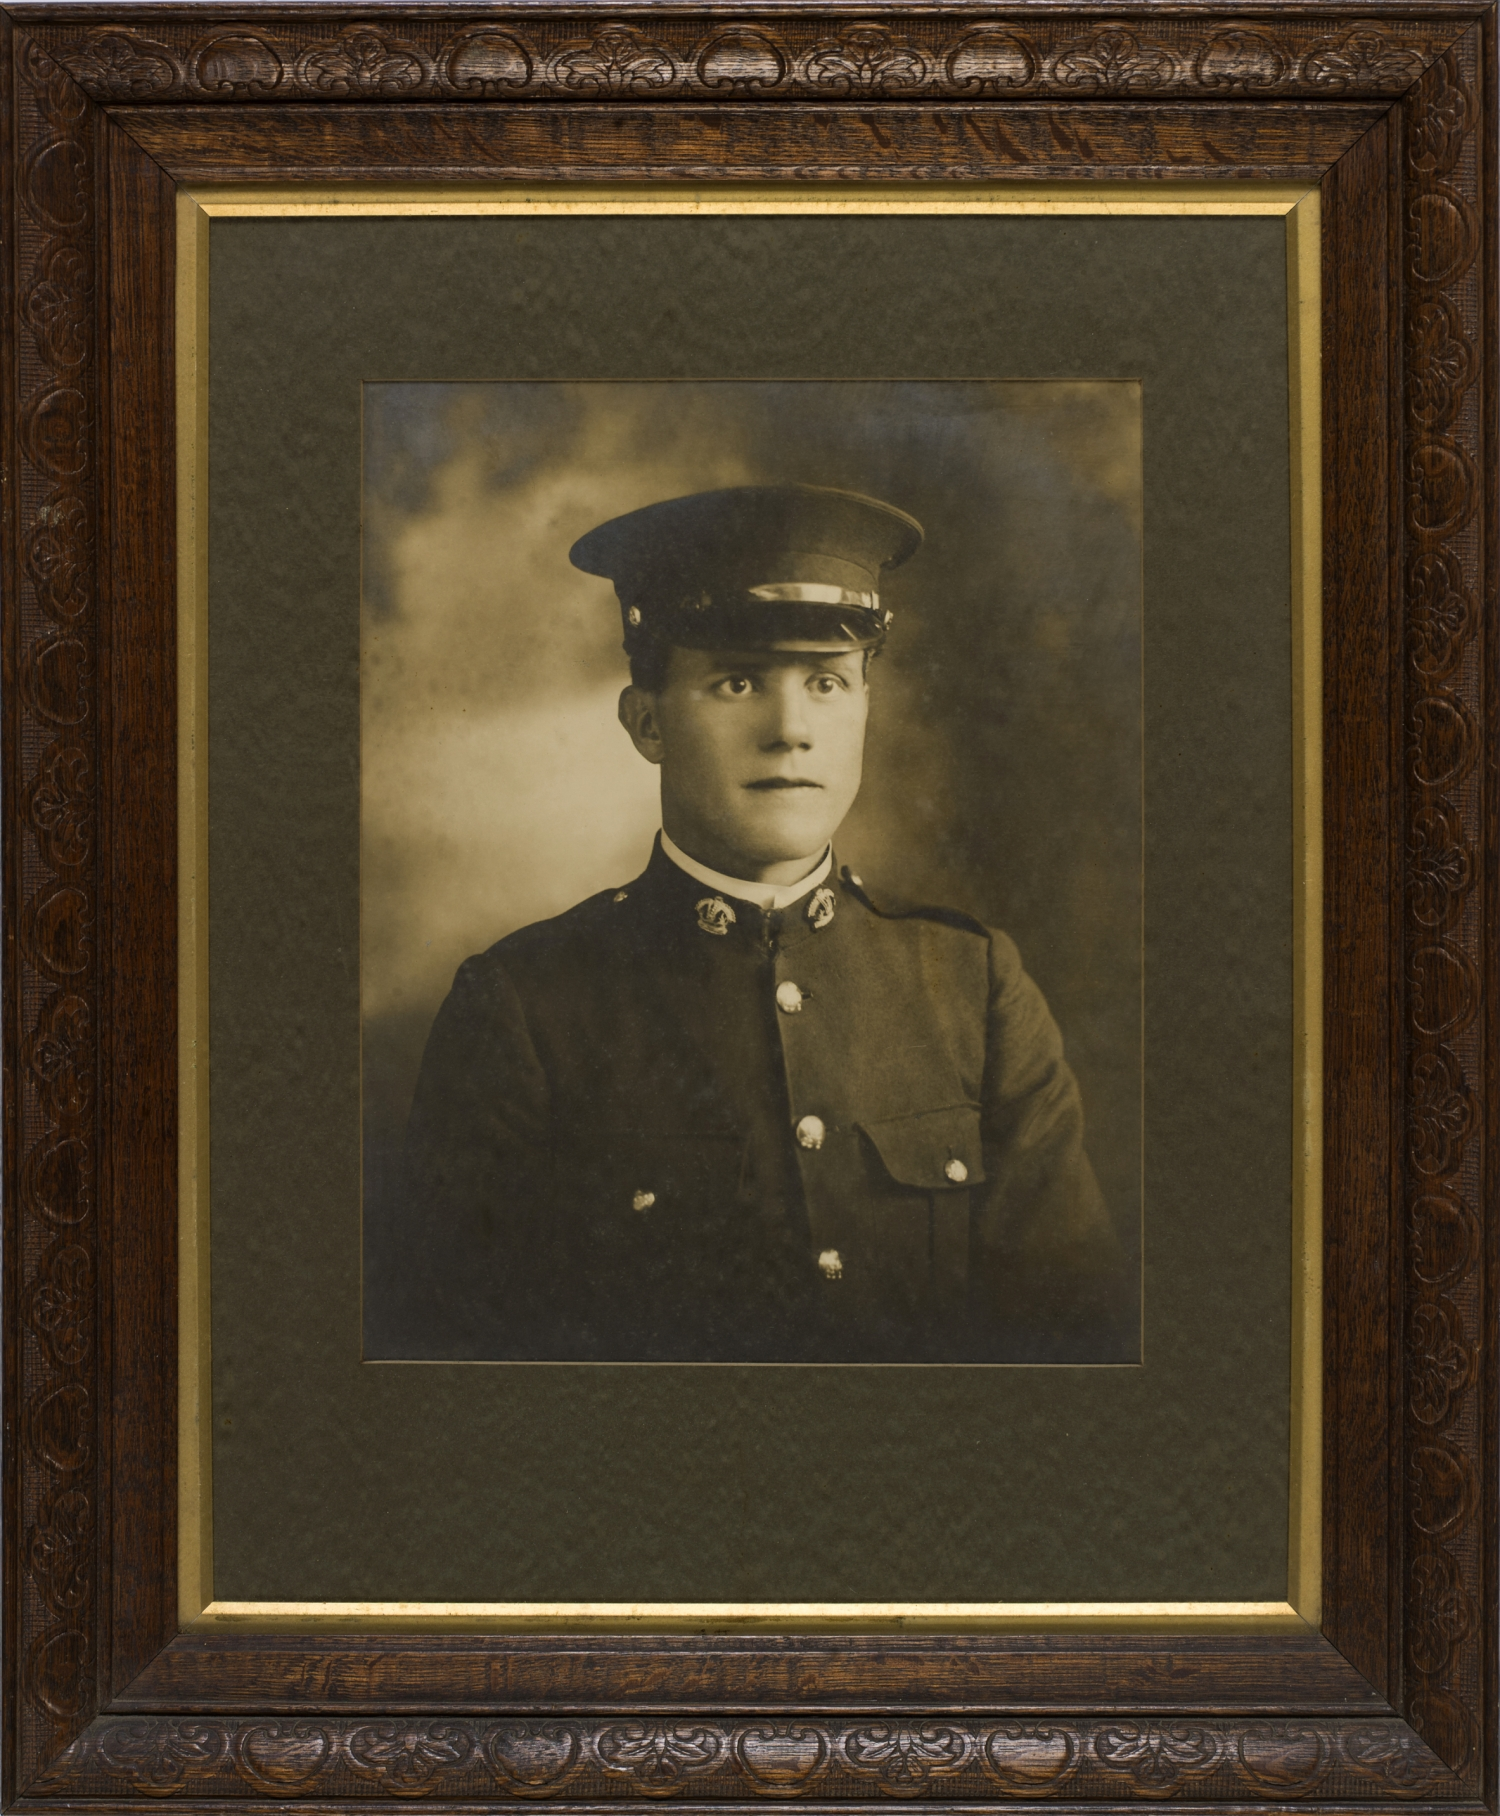 Sepia toned photograph of man in uniform with cap in brown leather frame.